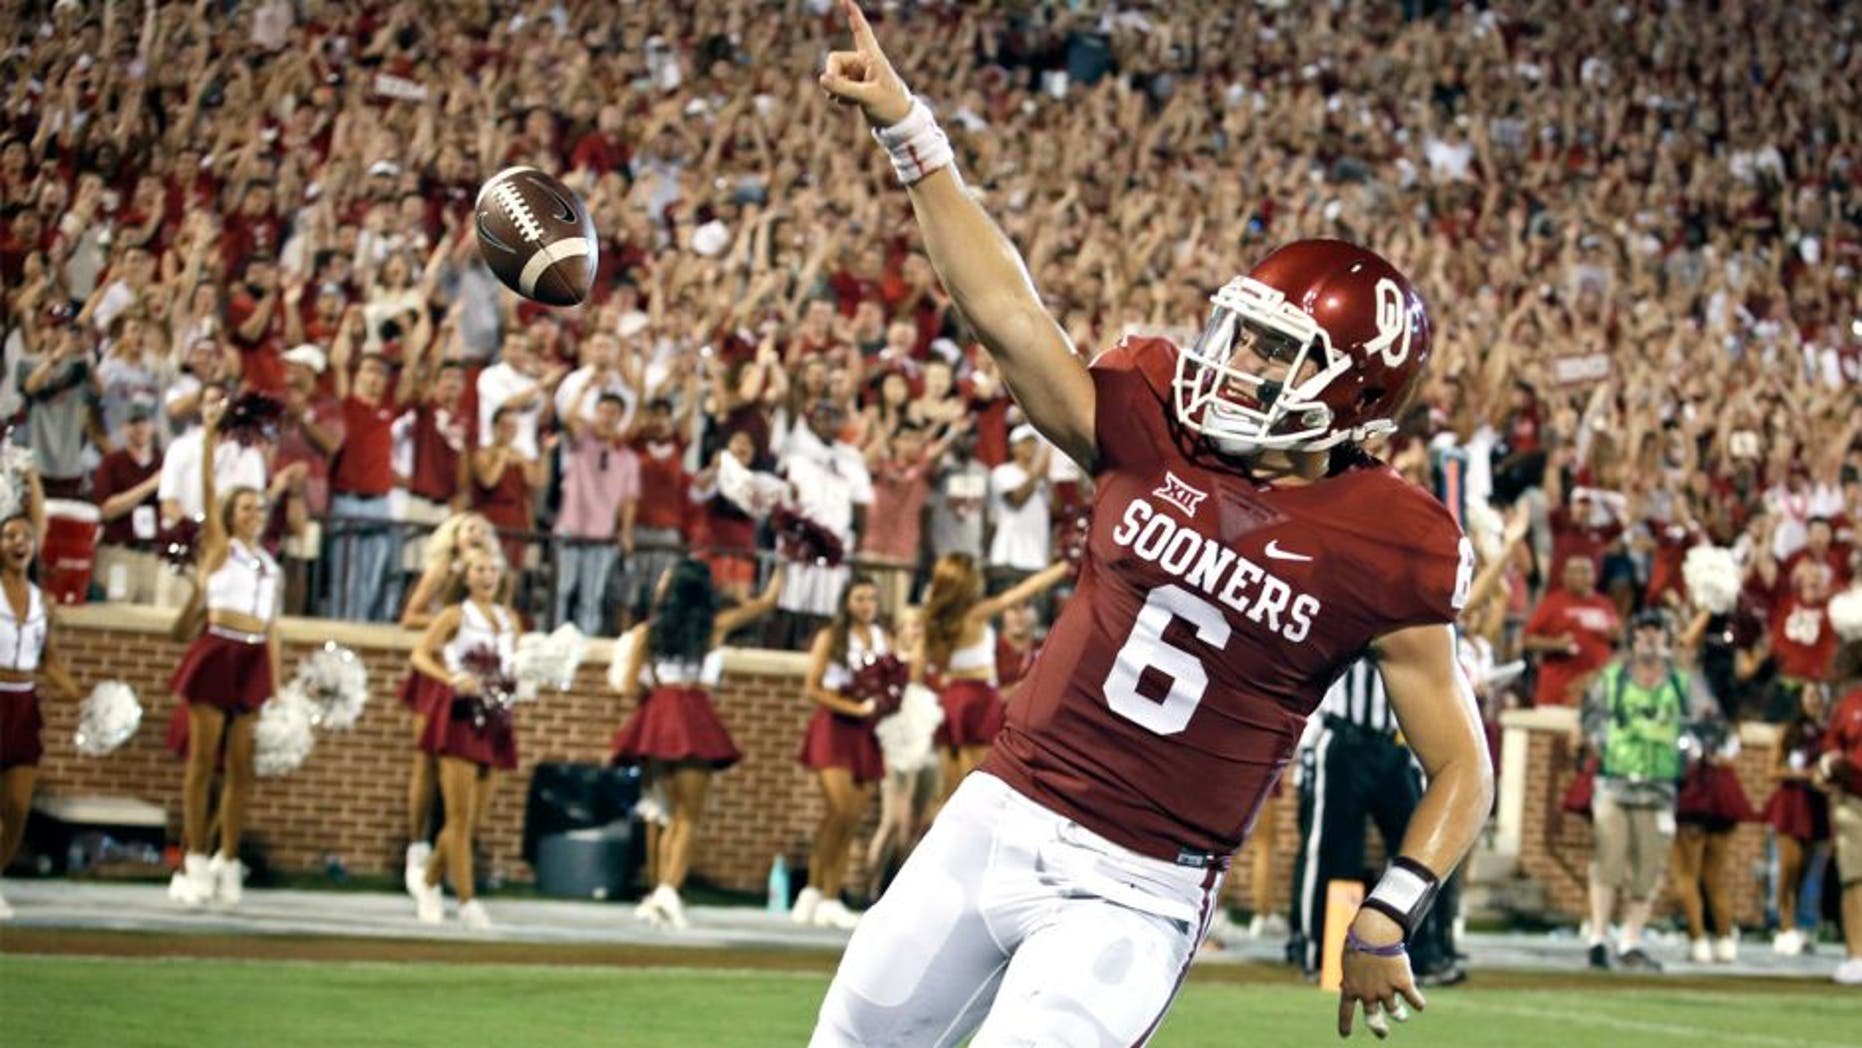 NORMAN, OK - SEPTEMBER 5: Quarterback Baker Mayfield #6 of the Oklahoma Sooners celebrates a touchdown against the Akron Zips September 5, 2015 at Gaylord Family-Oklahoma Memorial Stadium in Norman, Oklahoma. Oklahoma defeated Akron 41-3.(Photo by Brett Deering/Getty Images)